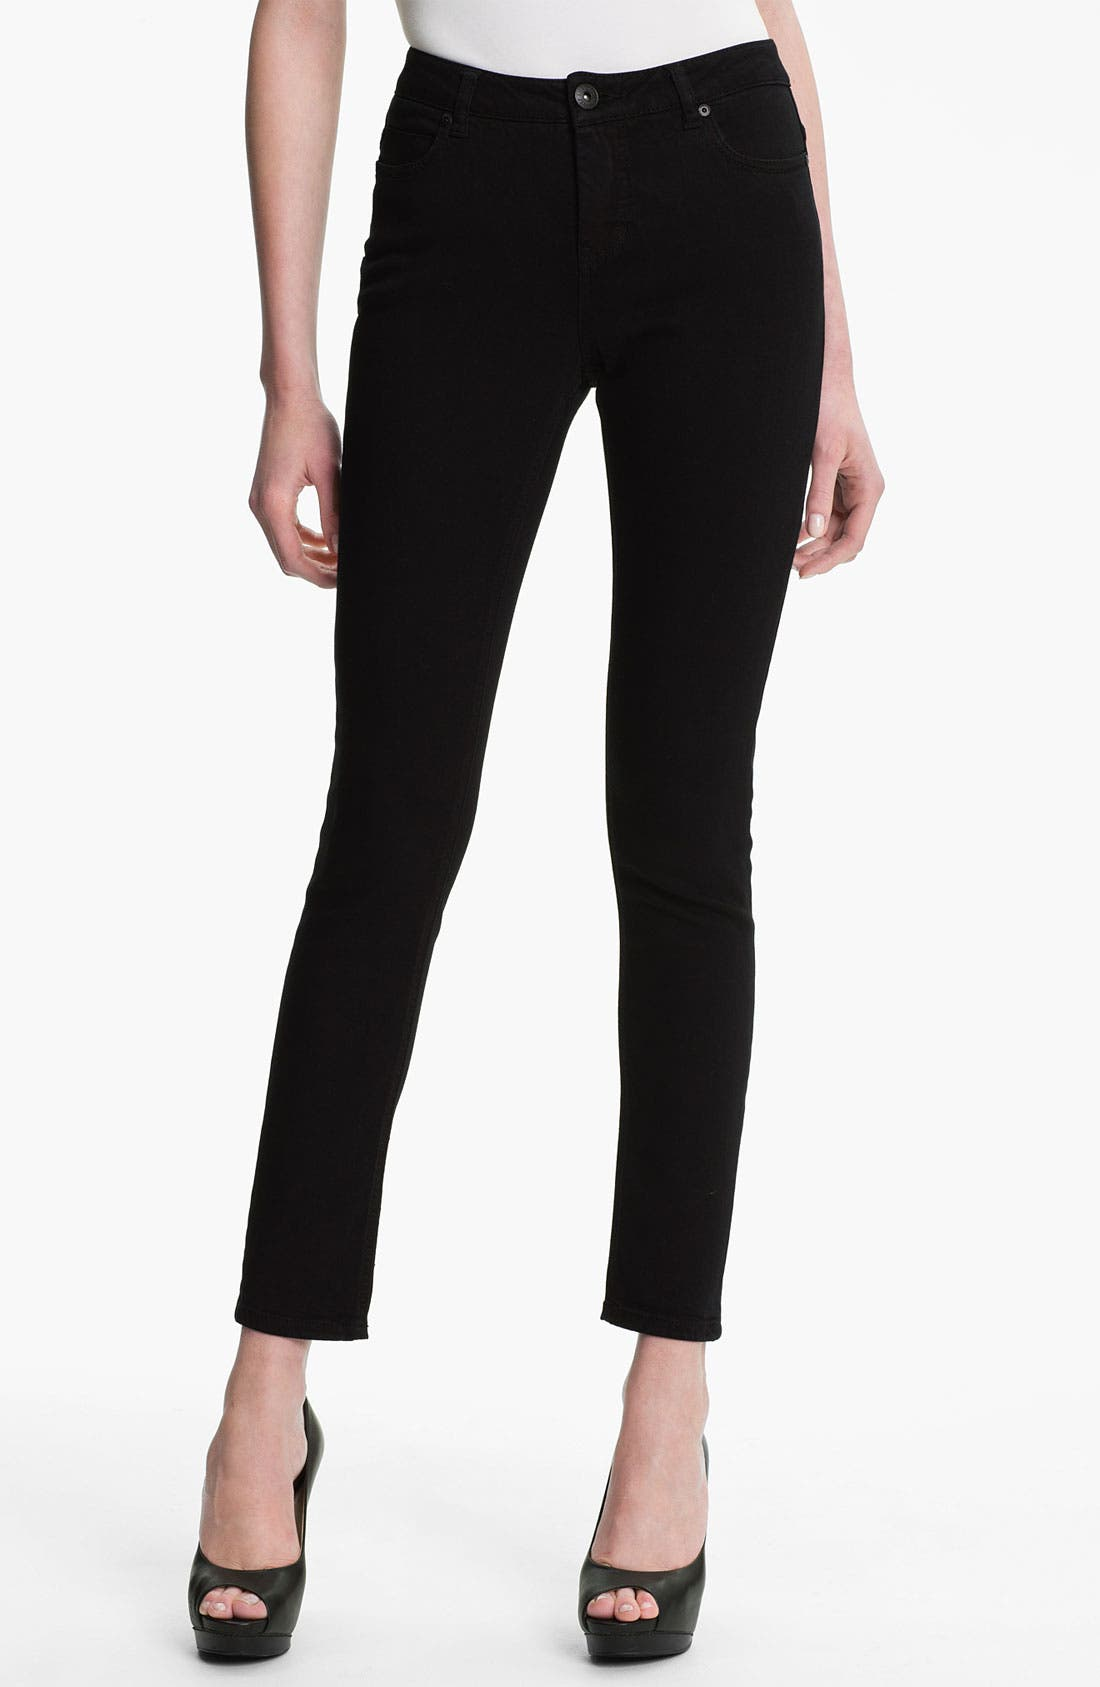 Alternate Image 1 Selected - Liverpool Jeans Company 'Madonna' Skinny Stretch Jeans